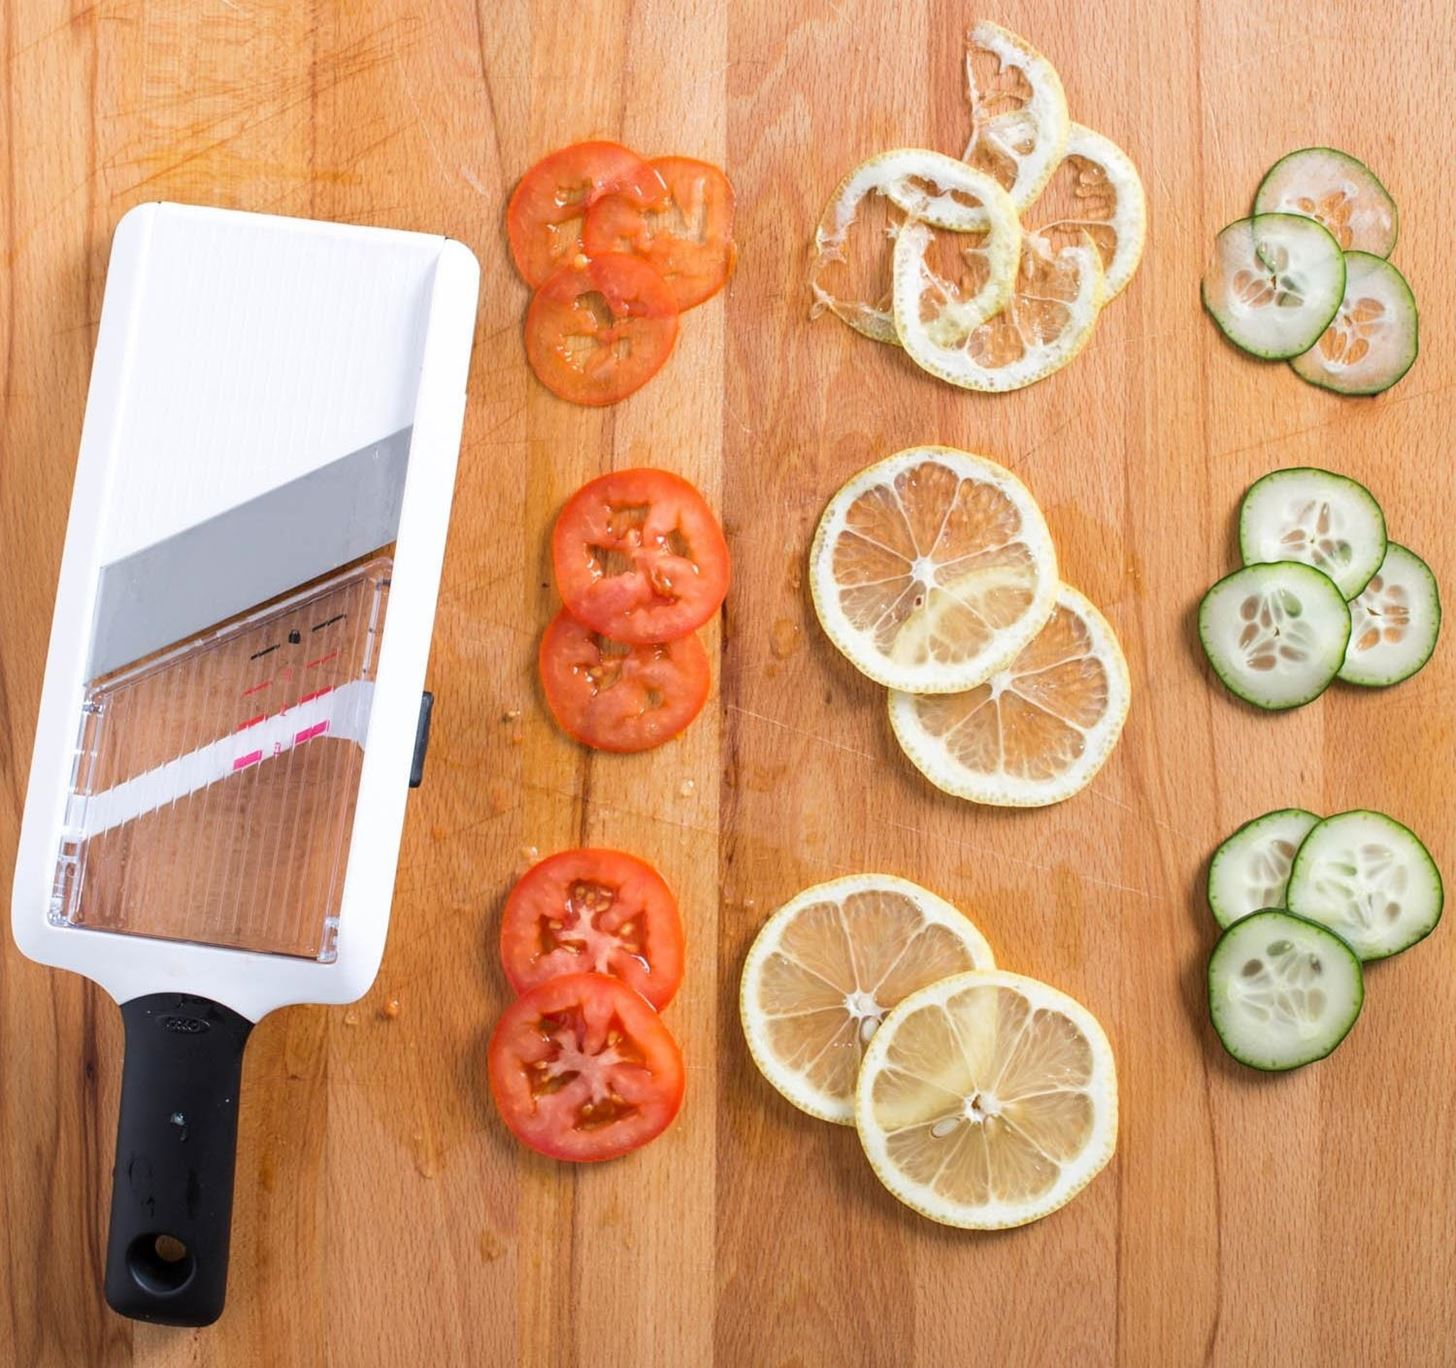 Ditch Your Mandoline for a Handheld Slicer Instead